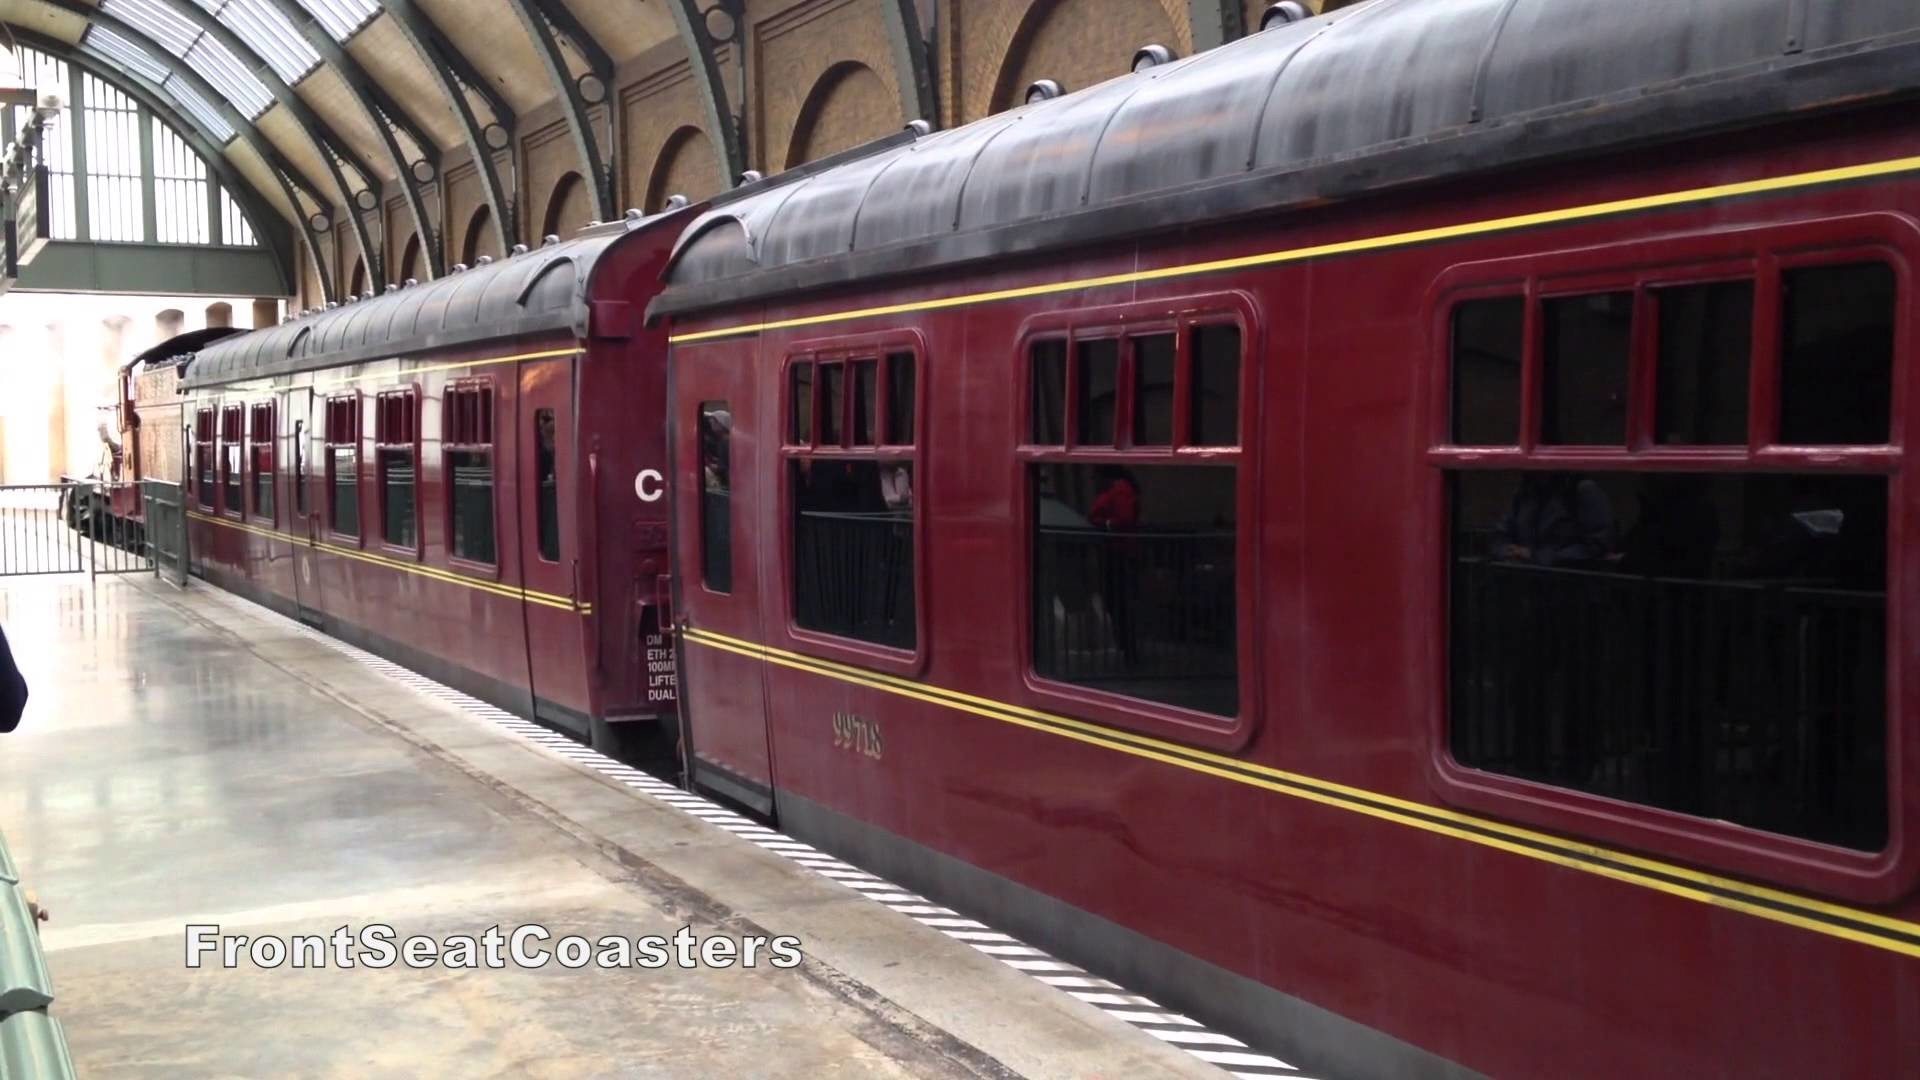 Res: 1920x1080, Hogwarts Express Wizarding World of Harry Potter - Train Pulls Into KIng's  Cross Station Orlando - YouTube